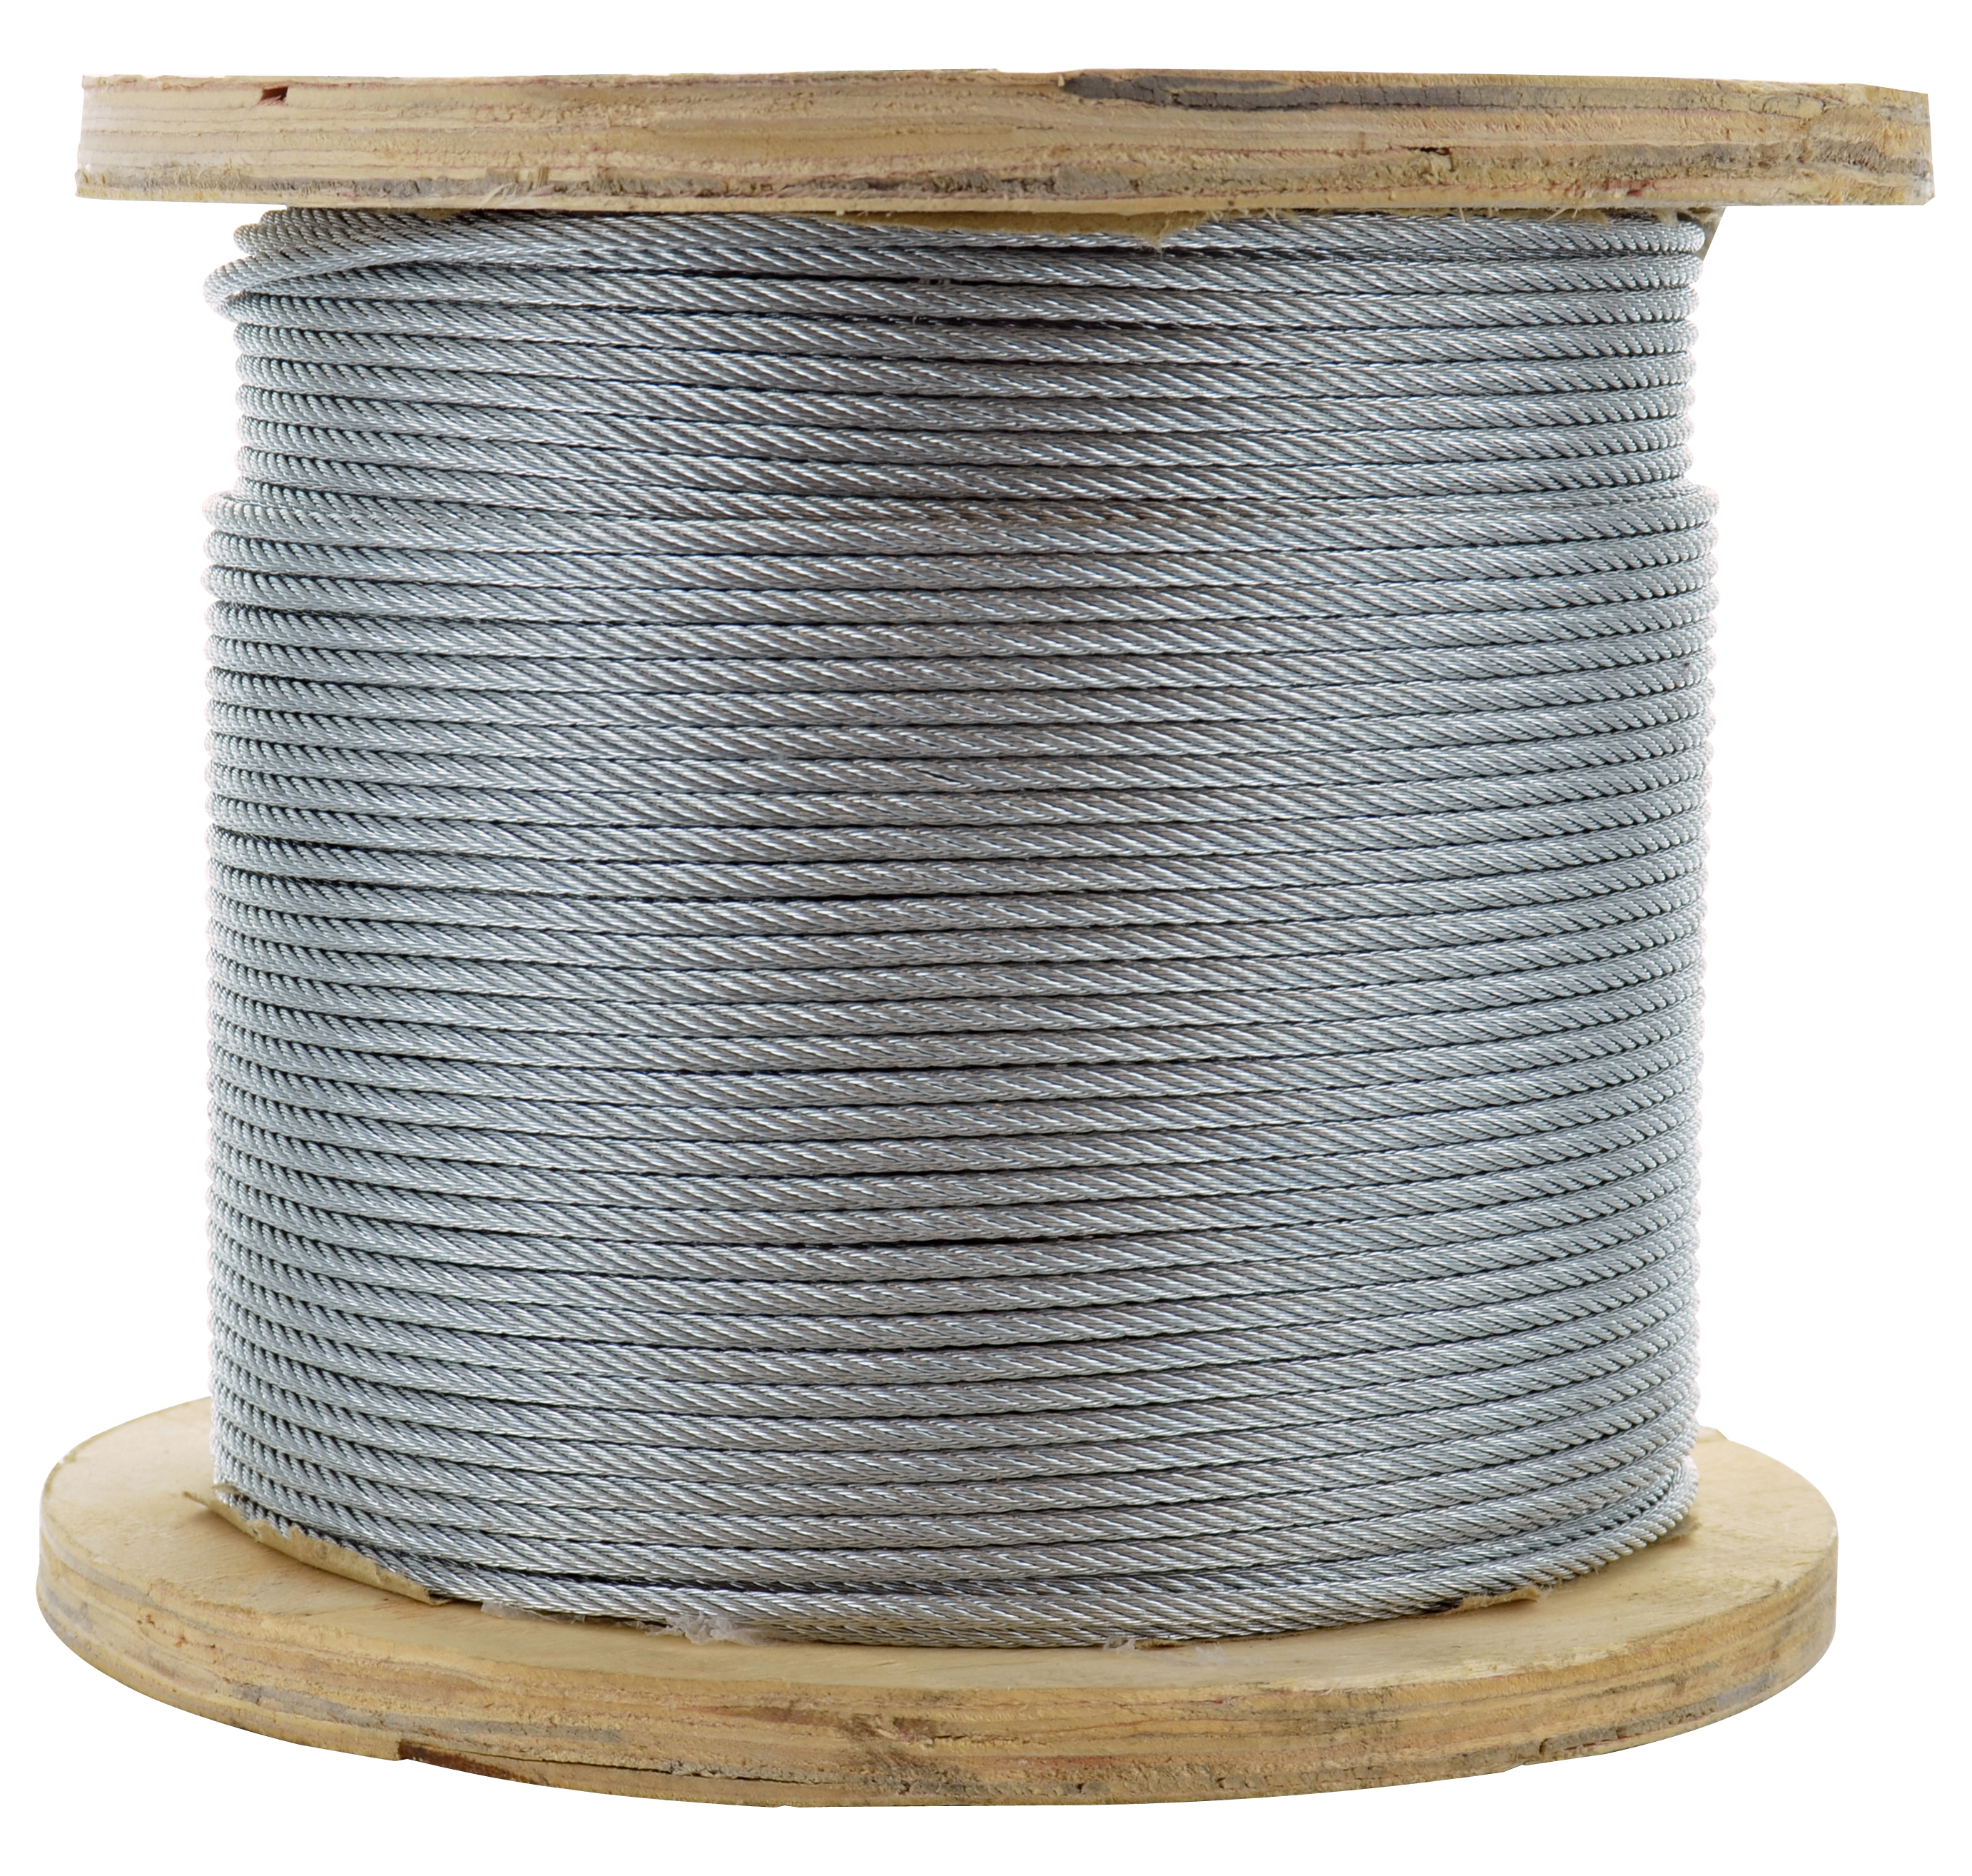 1/16 Inch x 250 ft 7X7 Strands 480 Lb Clear Vinyl Coated High Carbon Steel Galvanized Aircraft Cable